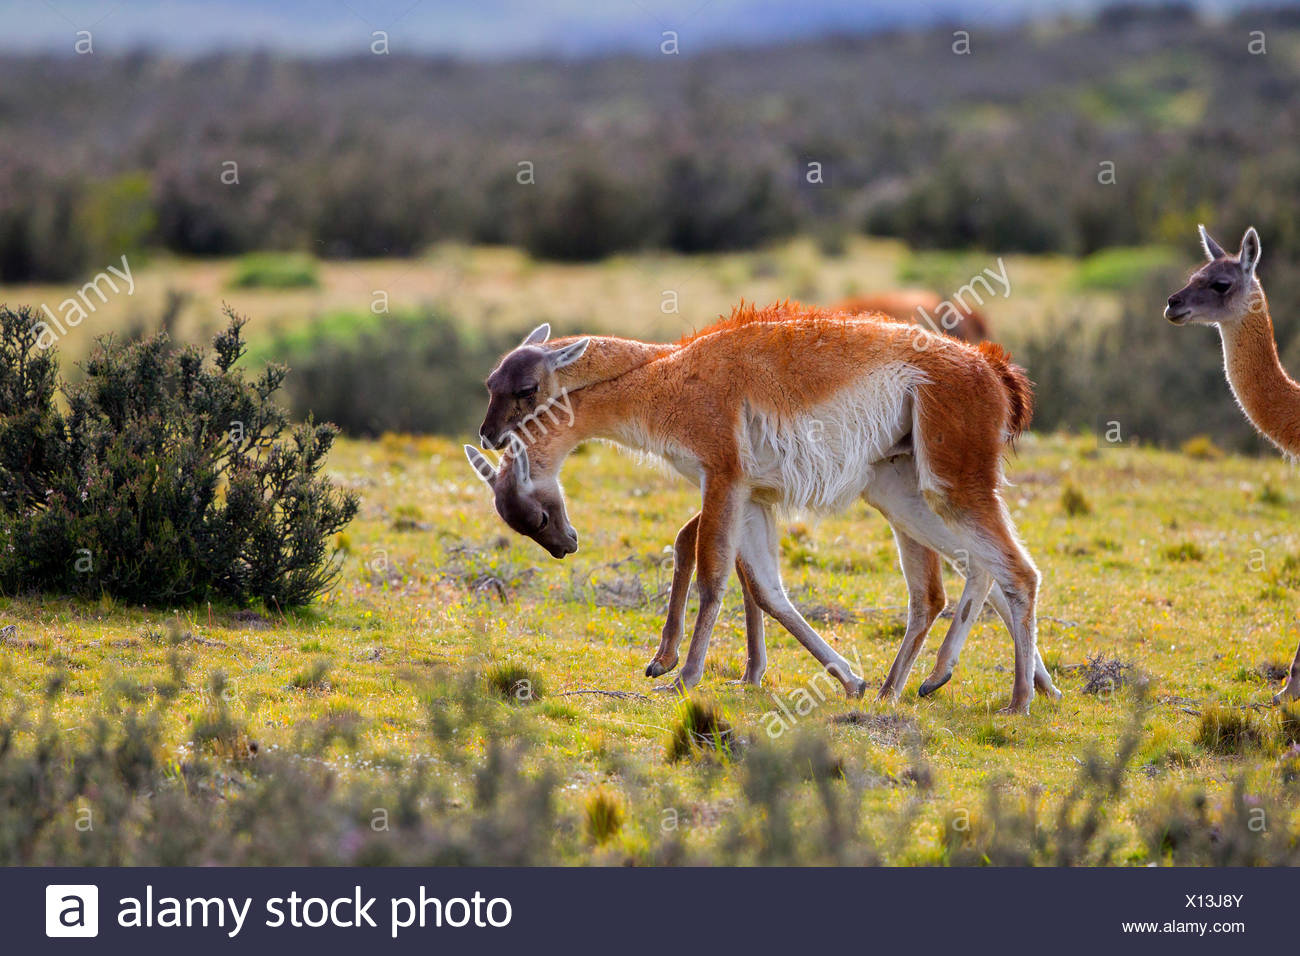 Guanacos fighting in steppe - Torres del Paine Chile Stock Photo